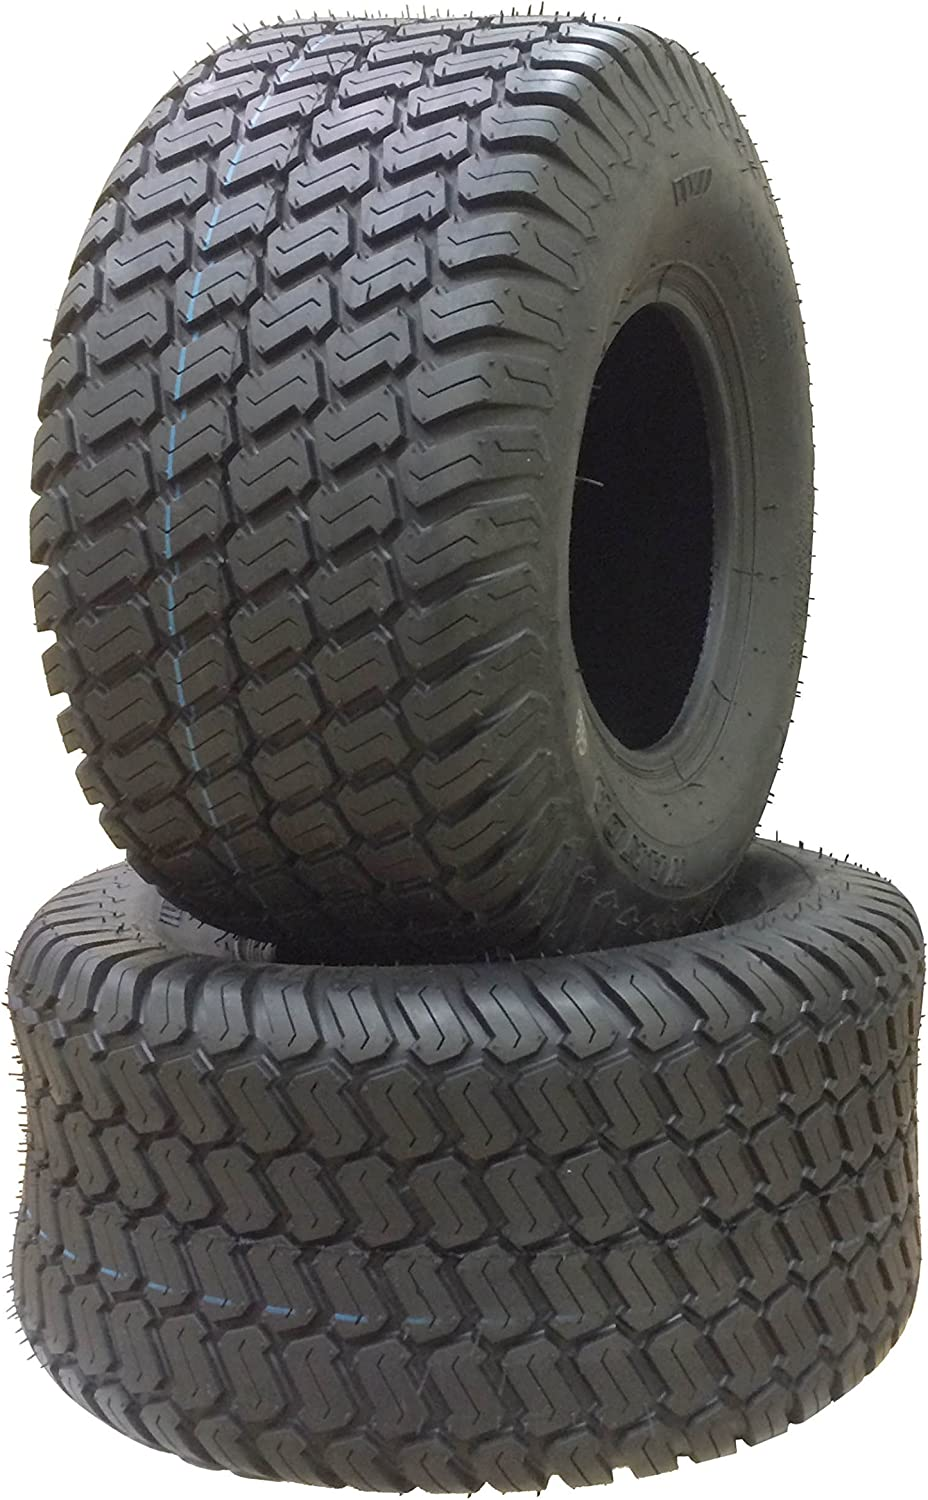 WANDA 2 New 18x9.50-8 Lawn Mower Utility Cart Turf Tires P332-13032